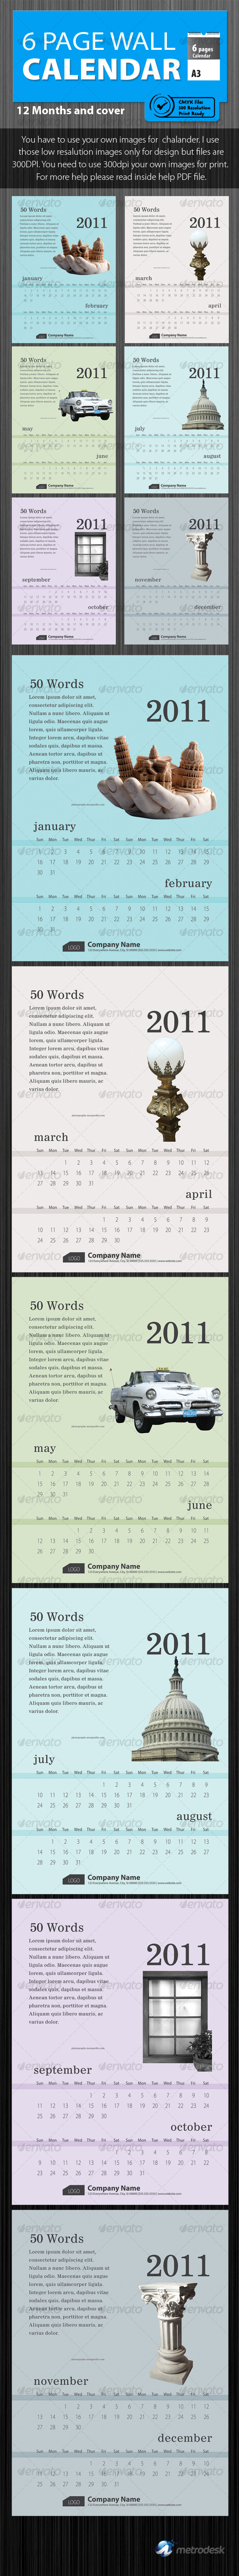 Wall calendar 2011 [6 Page] Print Ready  - Calendars Stationery